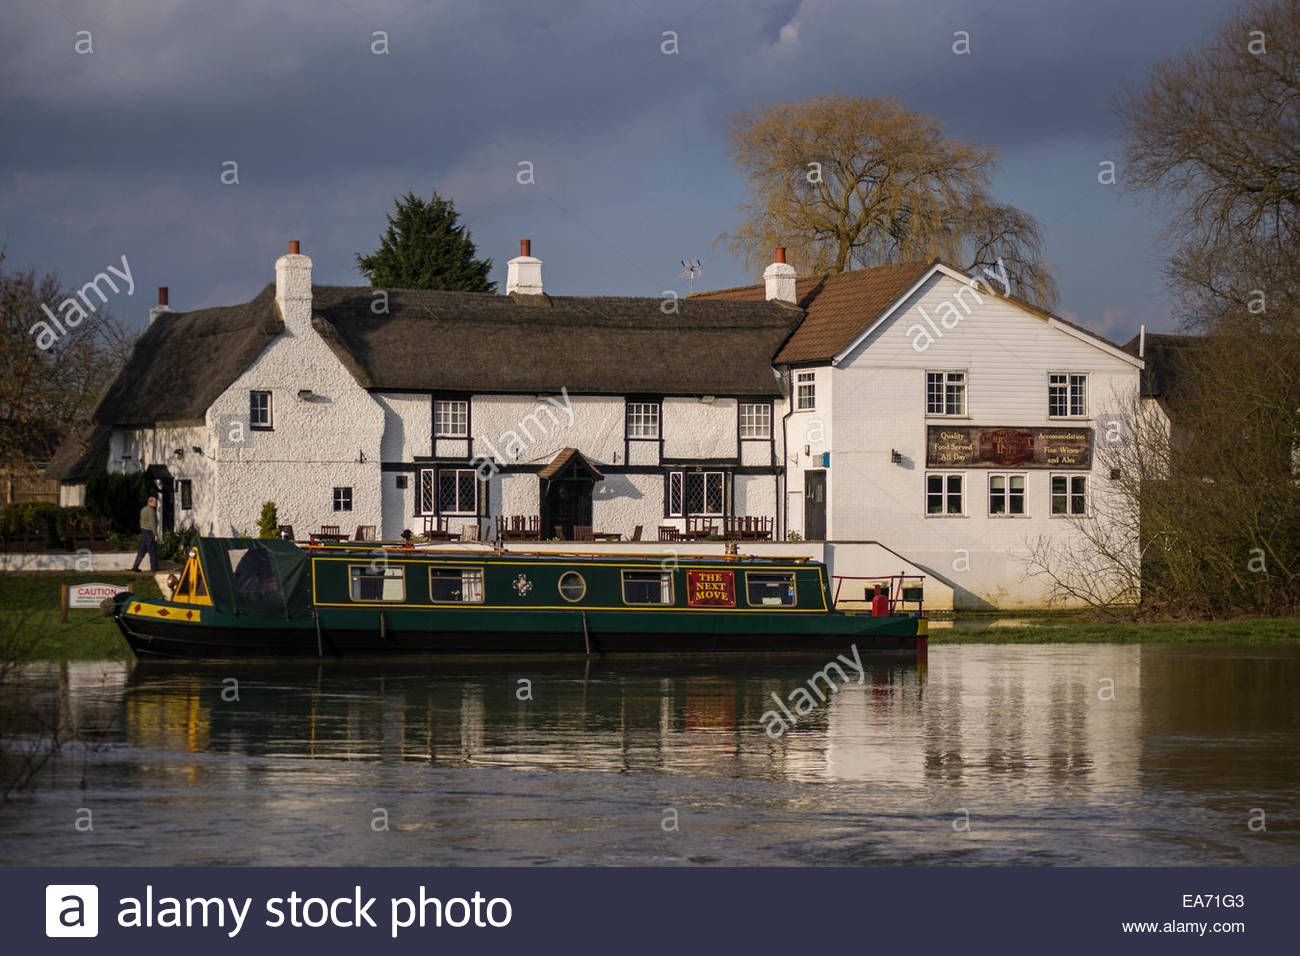 Narrow boat moored outside the Ferry Boat Inn on the River Great Ouse at Needingworth - Stock Image